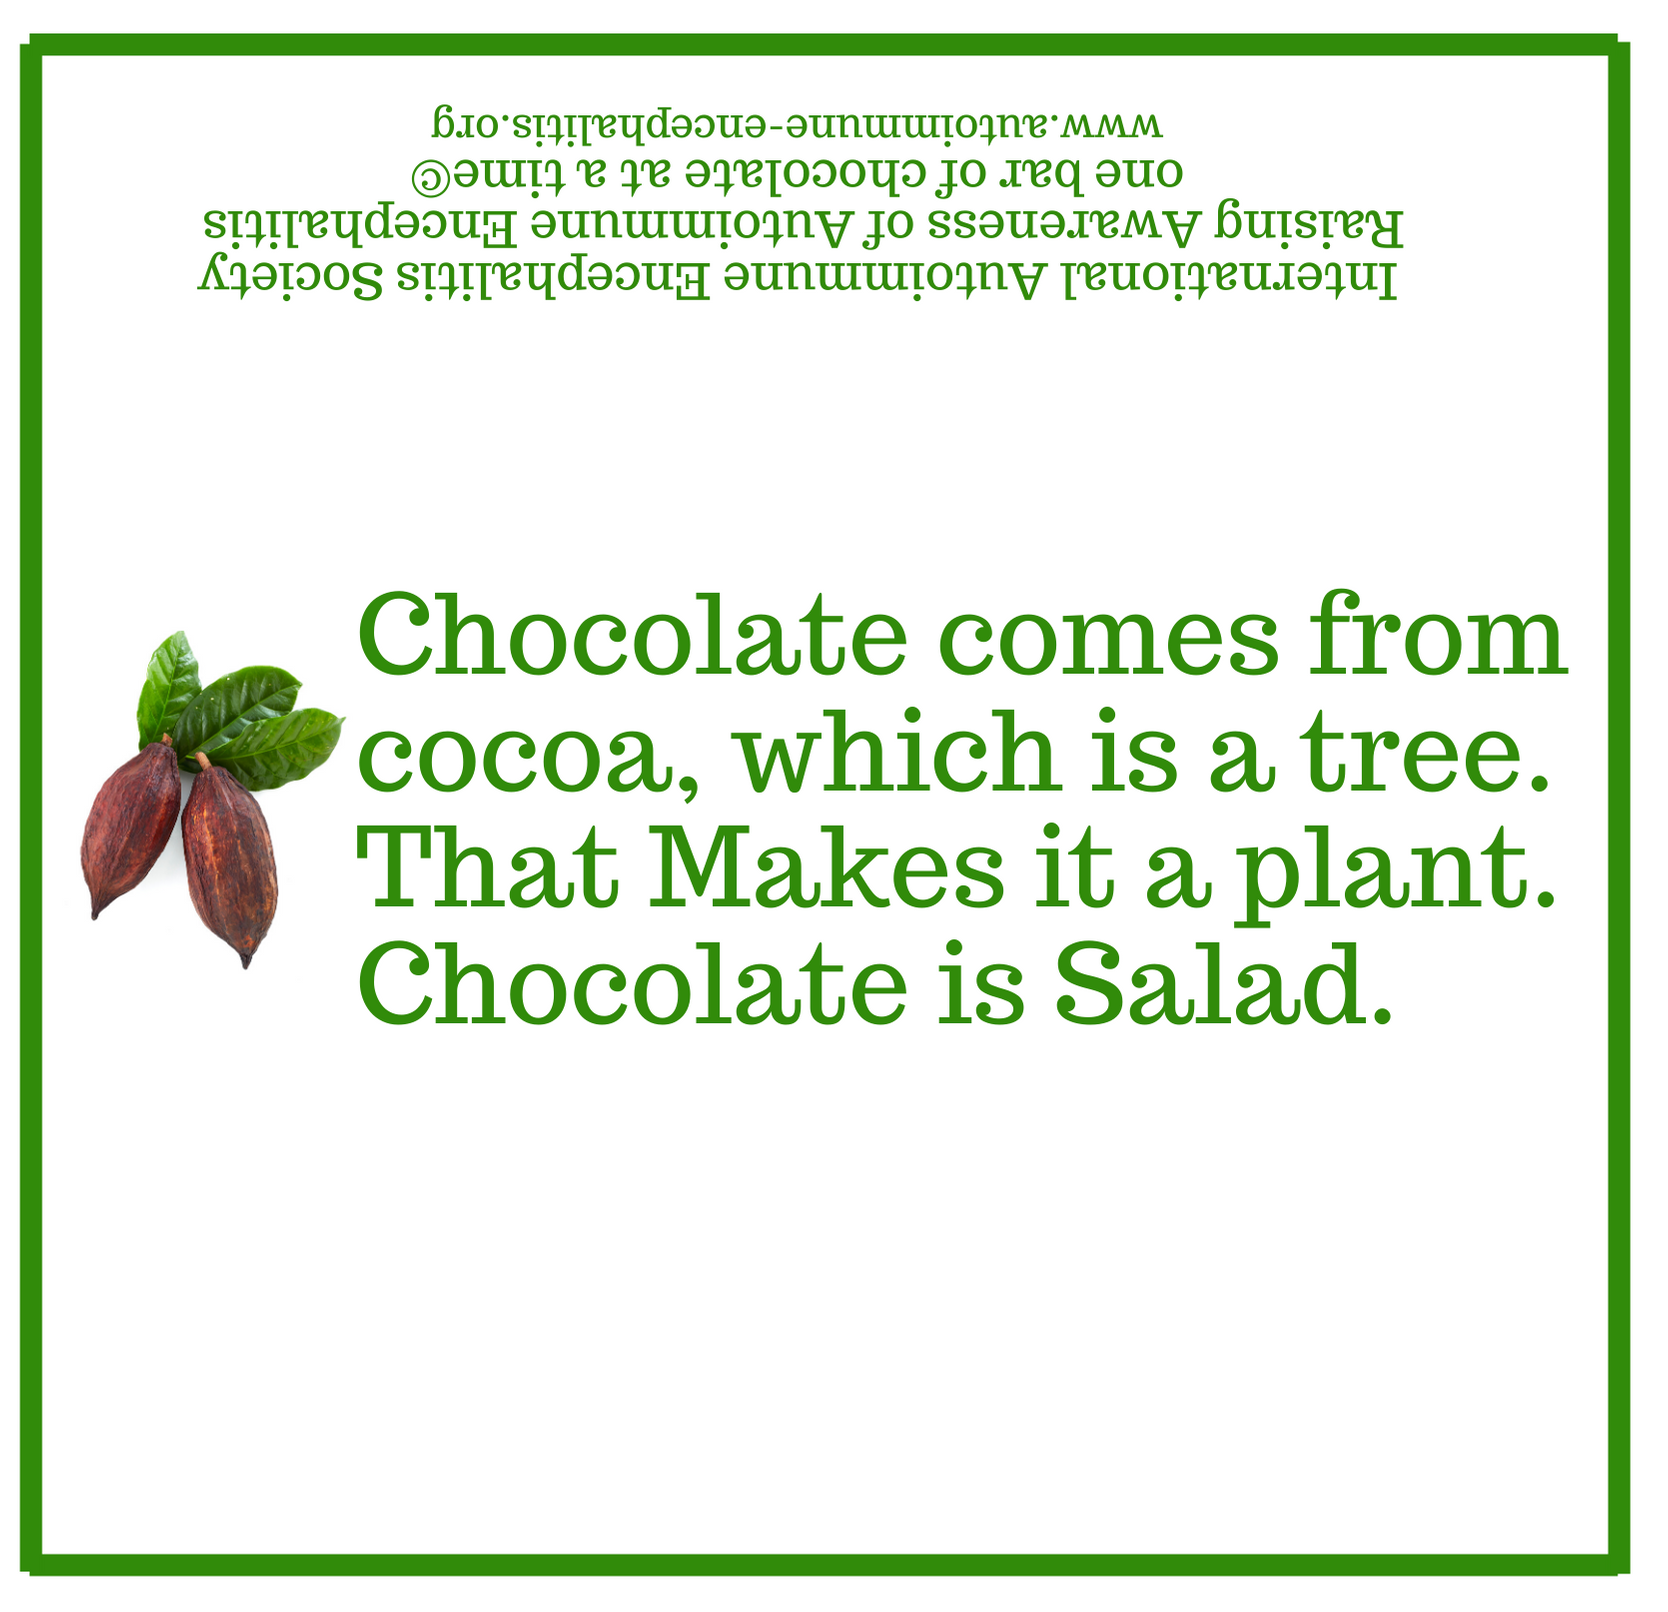 Chocolate is a salad  Candy Wrapper 5 9 16  x 5 3 8  1 - Downloads